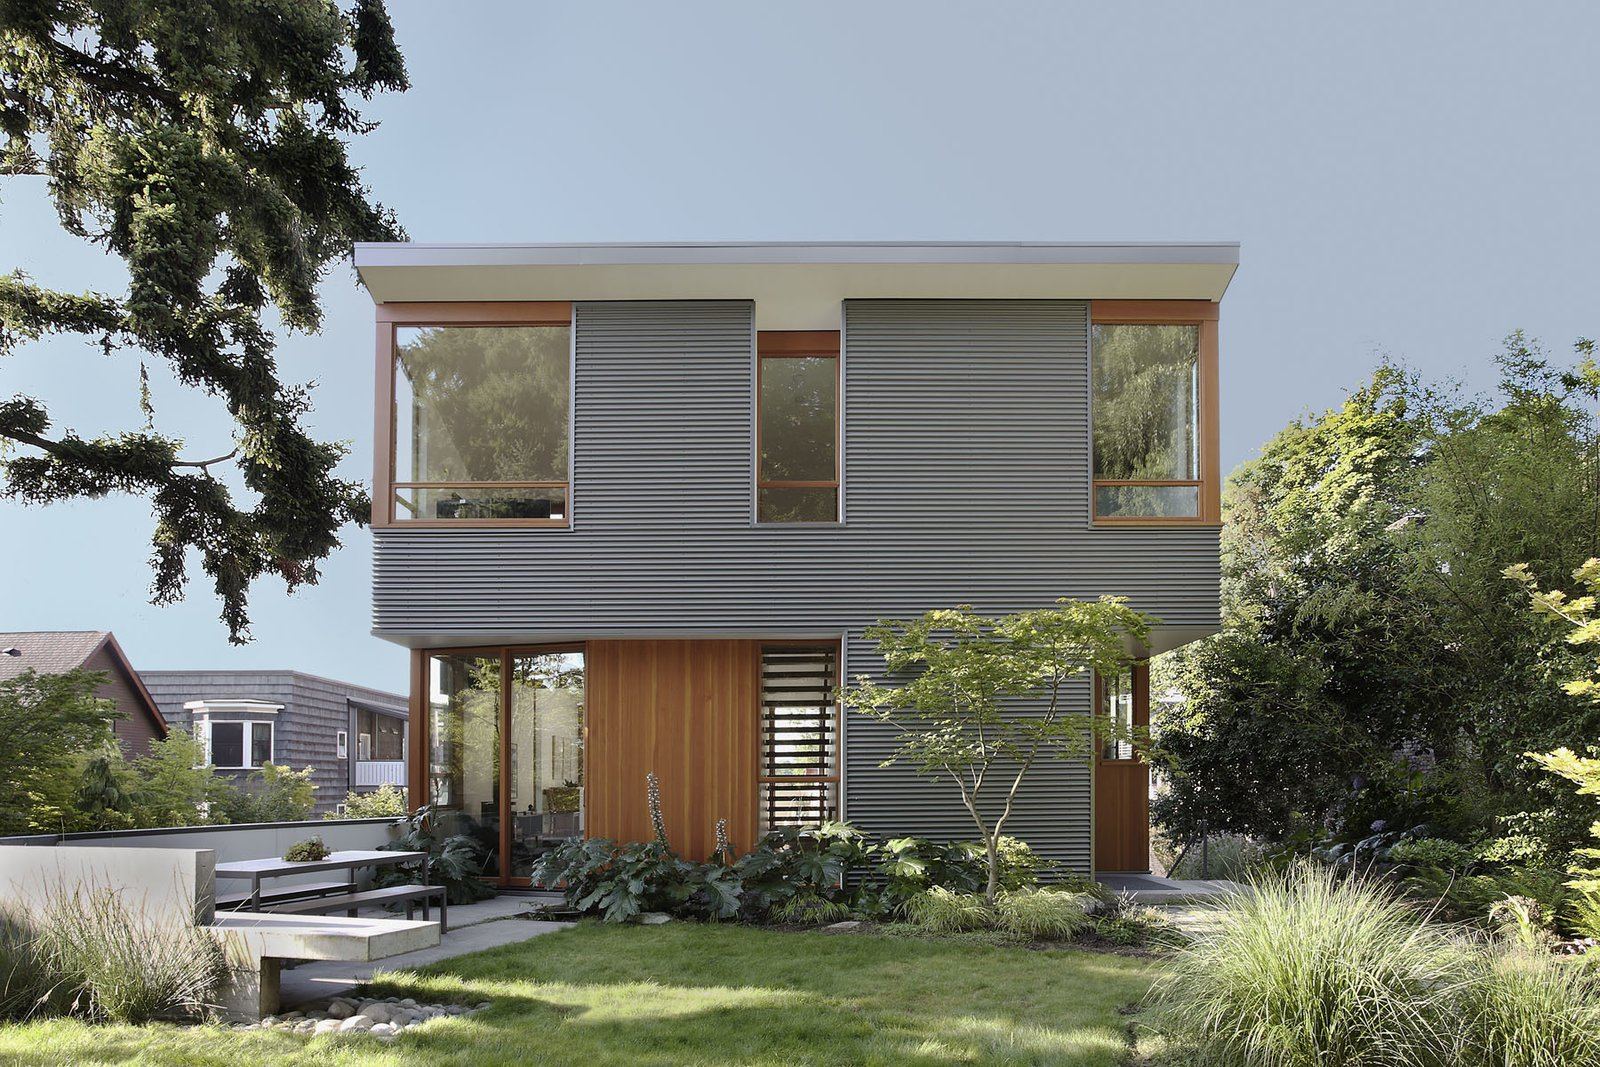 """""""Durability drove the selection of metal panels,"""" Schaer says of the home's industrial exterior. Manufactured by AEP SPAN from corrugated cladding, it looks like zinc but costs significantly less. It also contrasts nicely with the natural siding and trim. """"All of the wood inside and out is Douglas Fir, the predominant wood species in the northwest,"""" Schaer explains. Tagged: Exterior and House.  Photo 1 of 11 in Seattle Home Carefully Blocks Out Neighbors, While Celebrating Natural Surroundings"""